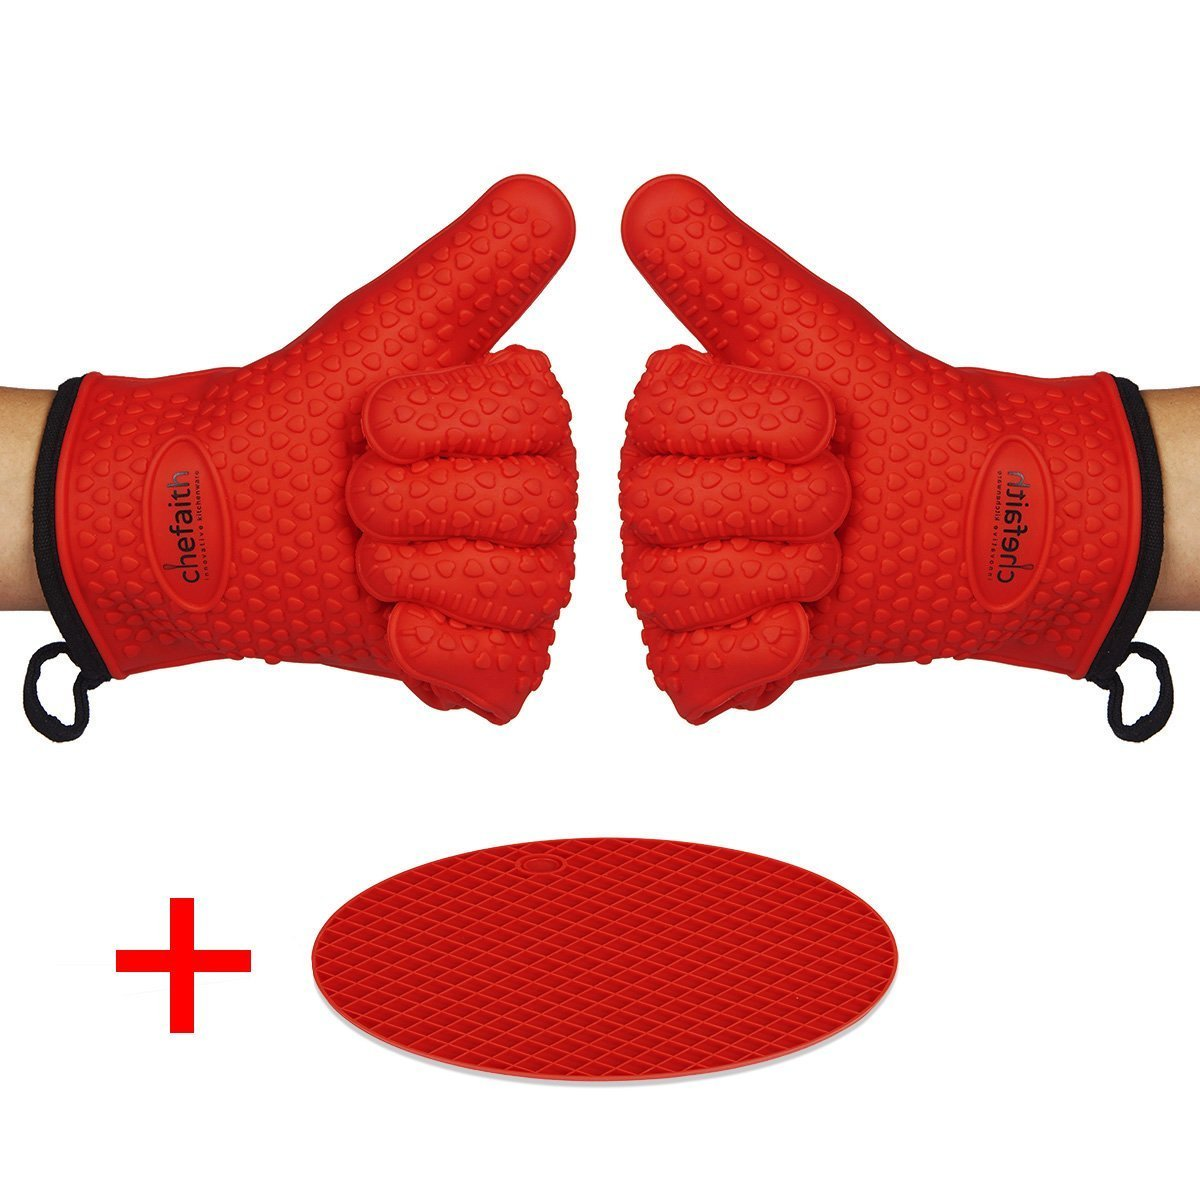 Chefaith Silicone Kitchen Gloves [Barbecue Shredding Smoker Meat Gloves] for Cooking, Baking, BBQ, Grilling [Free Pot Holder as Bonus]- Heat Resistant (Up to 480°F) Oven Mitts, Best Protection Ever by Chefaith (Image #1)